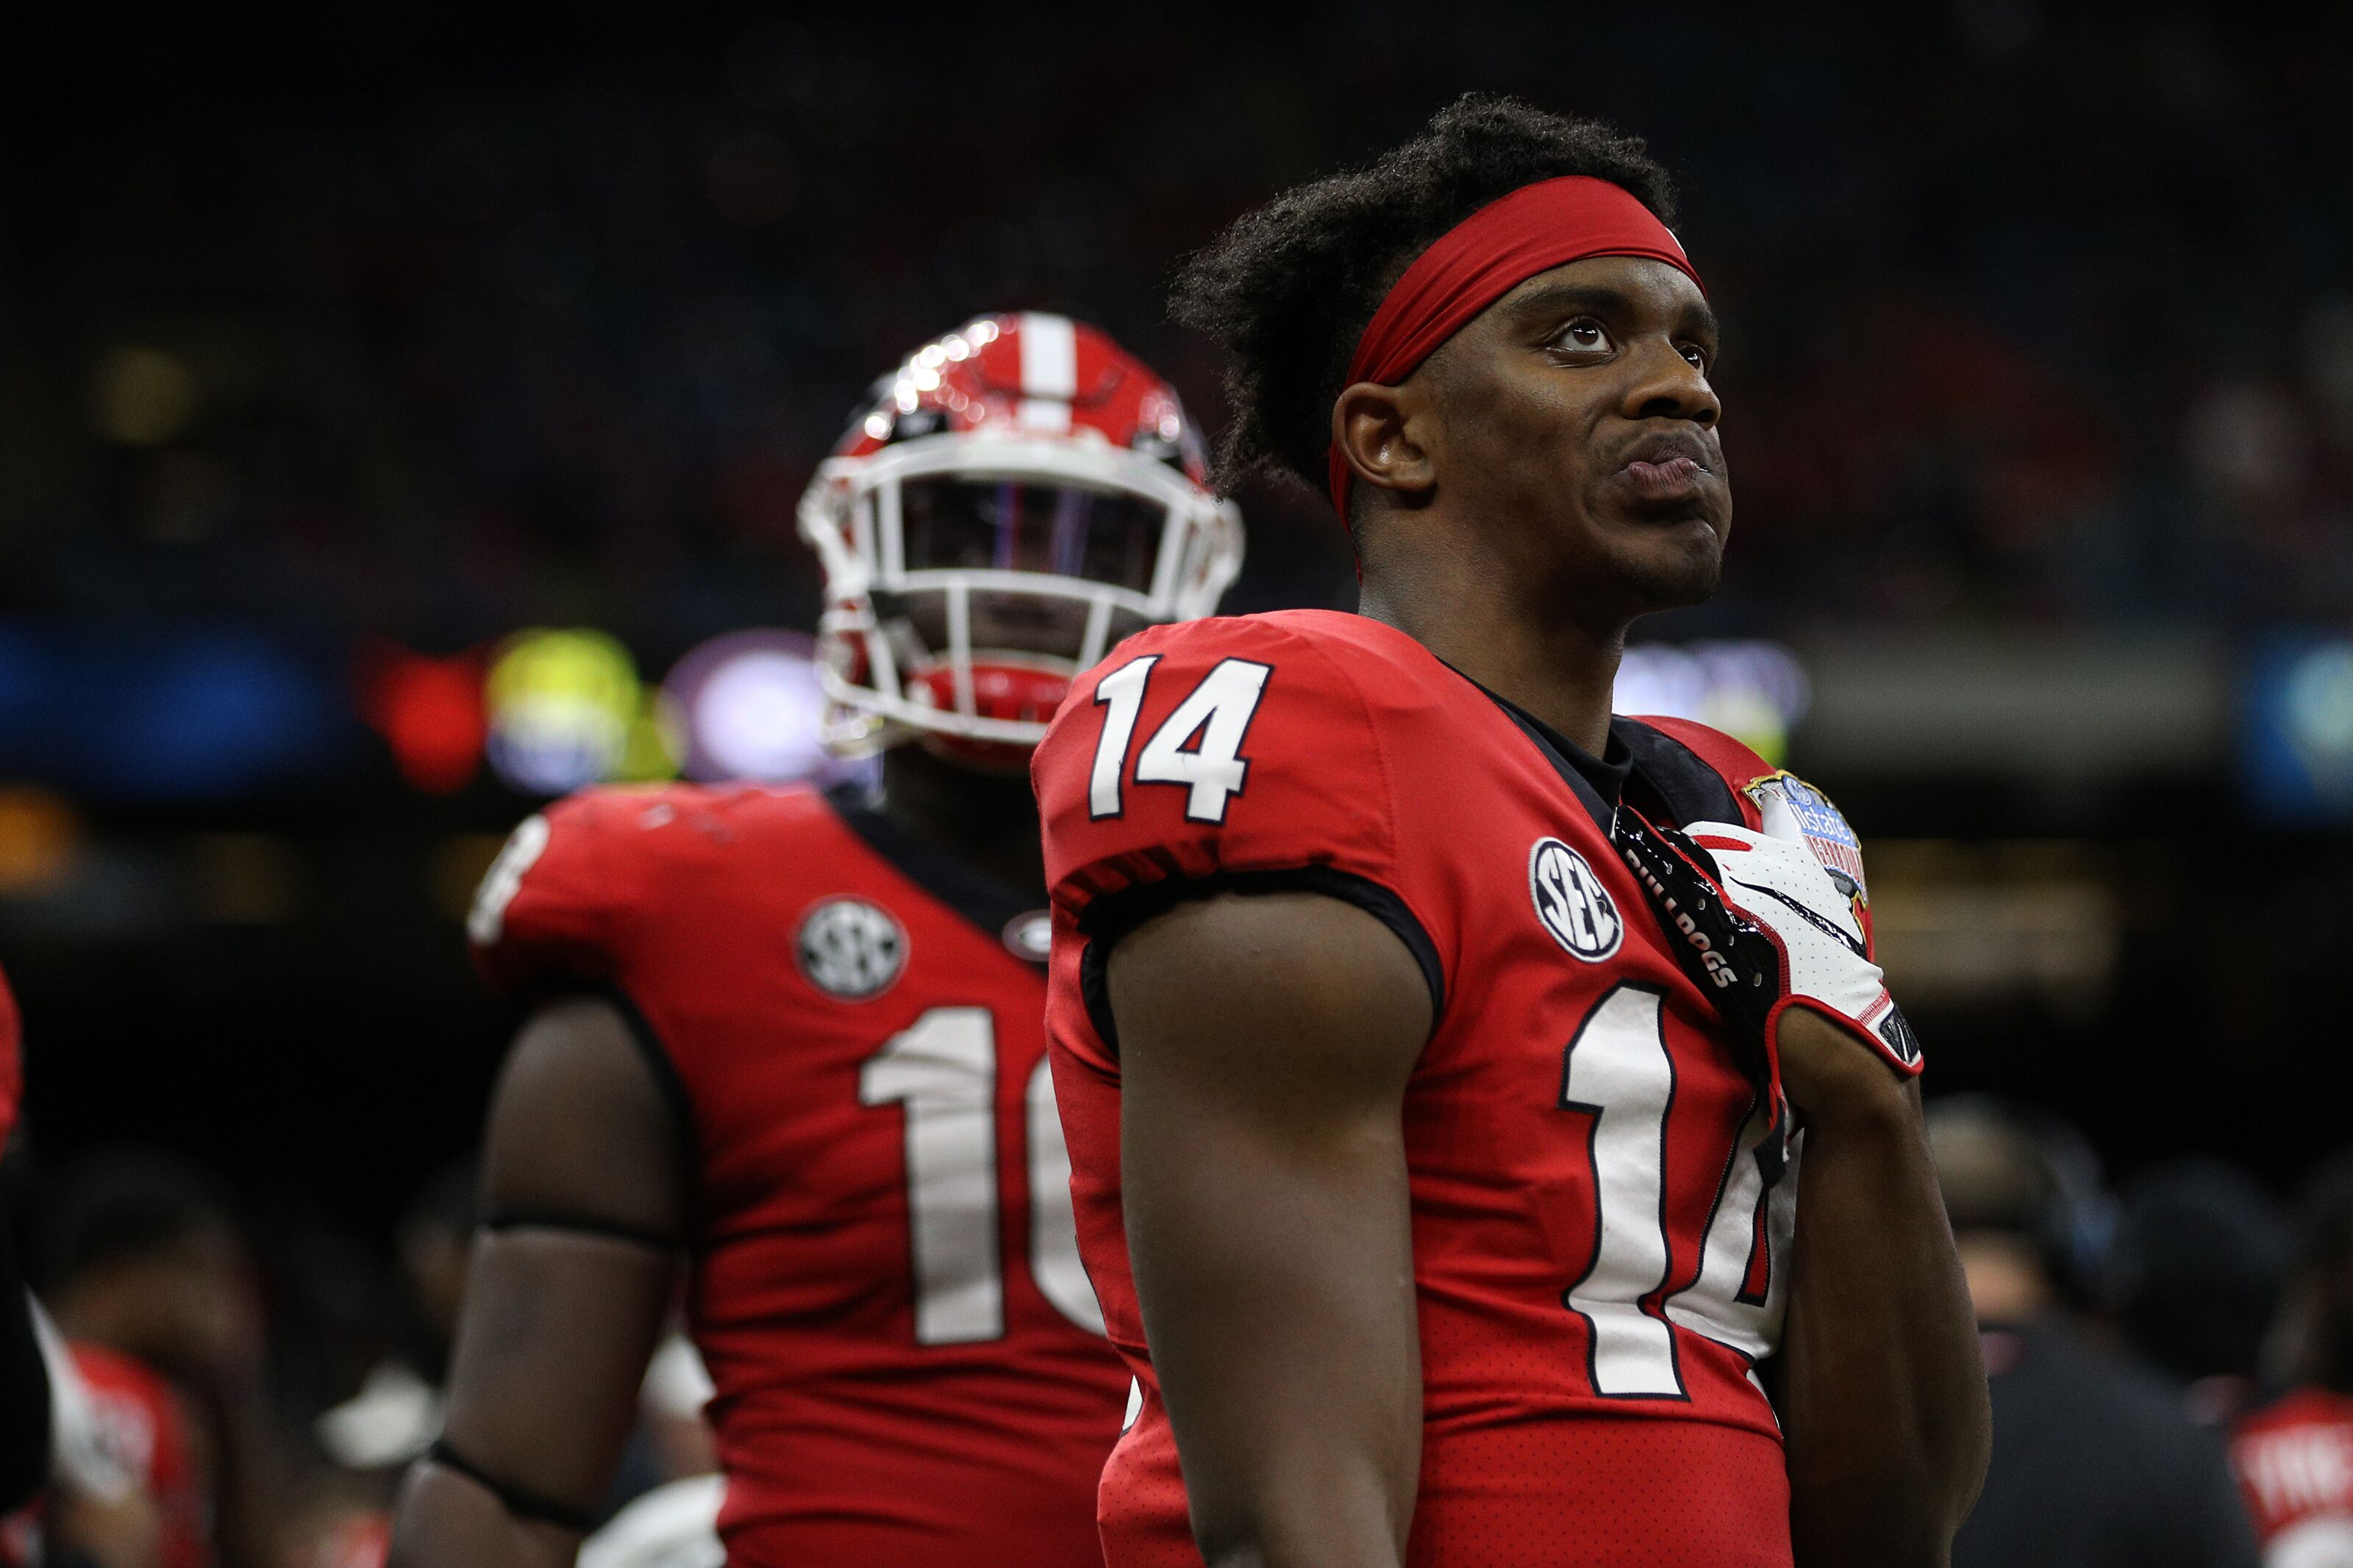 Georgia football: Sugar Bowl meaningless, or a larger issue in program